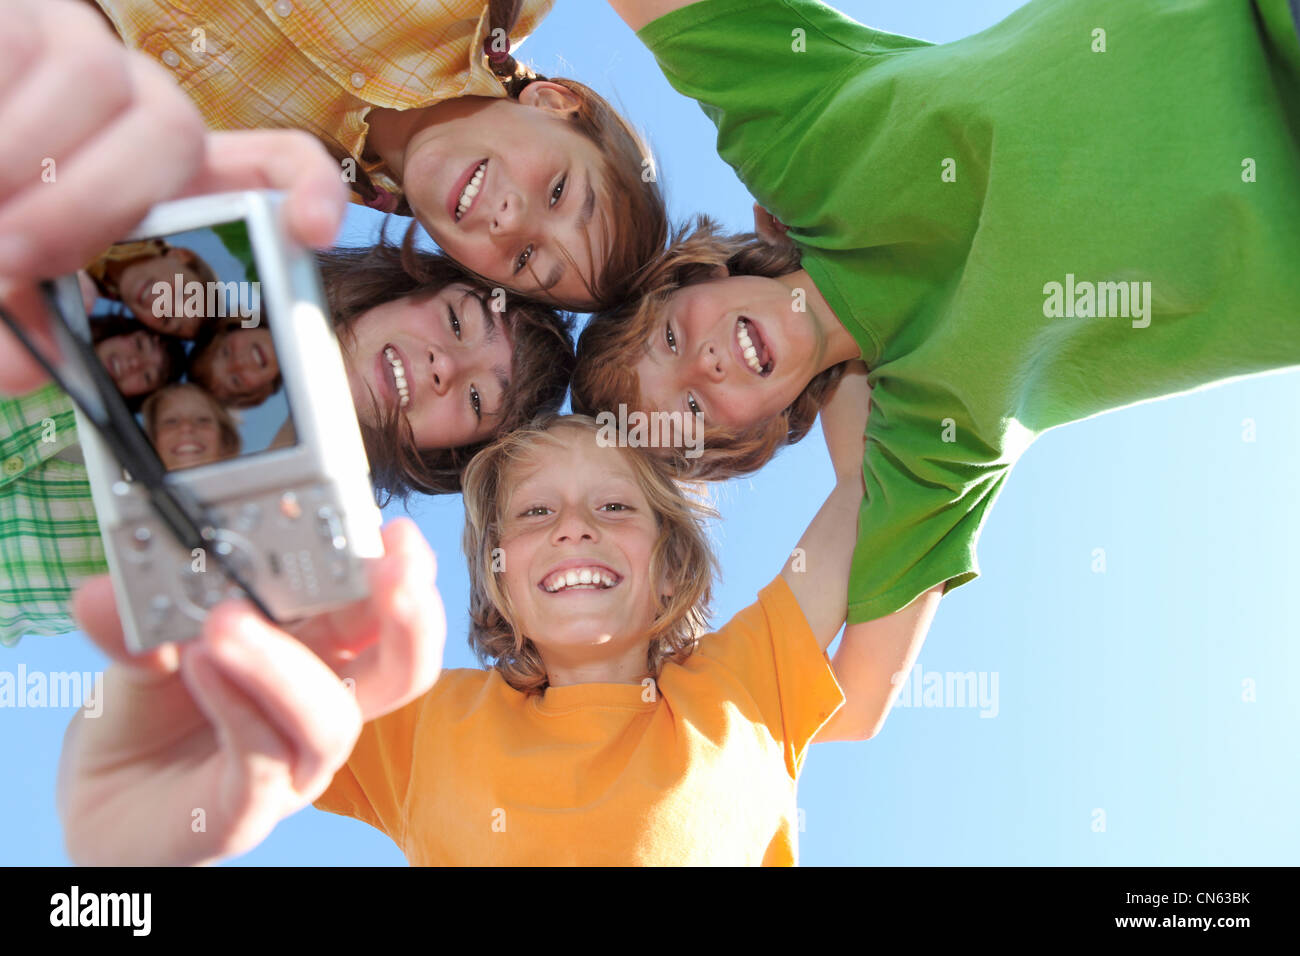 white teeth and smiles, happy group of kids taking photo with camera - Stock Image